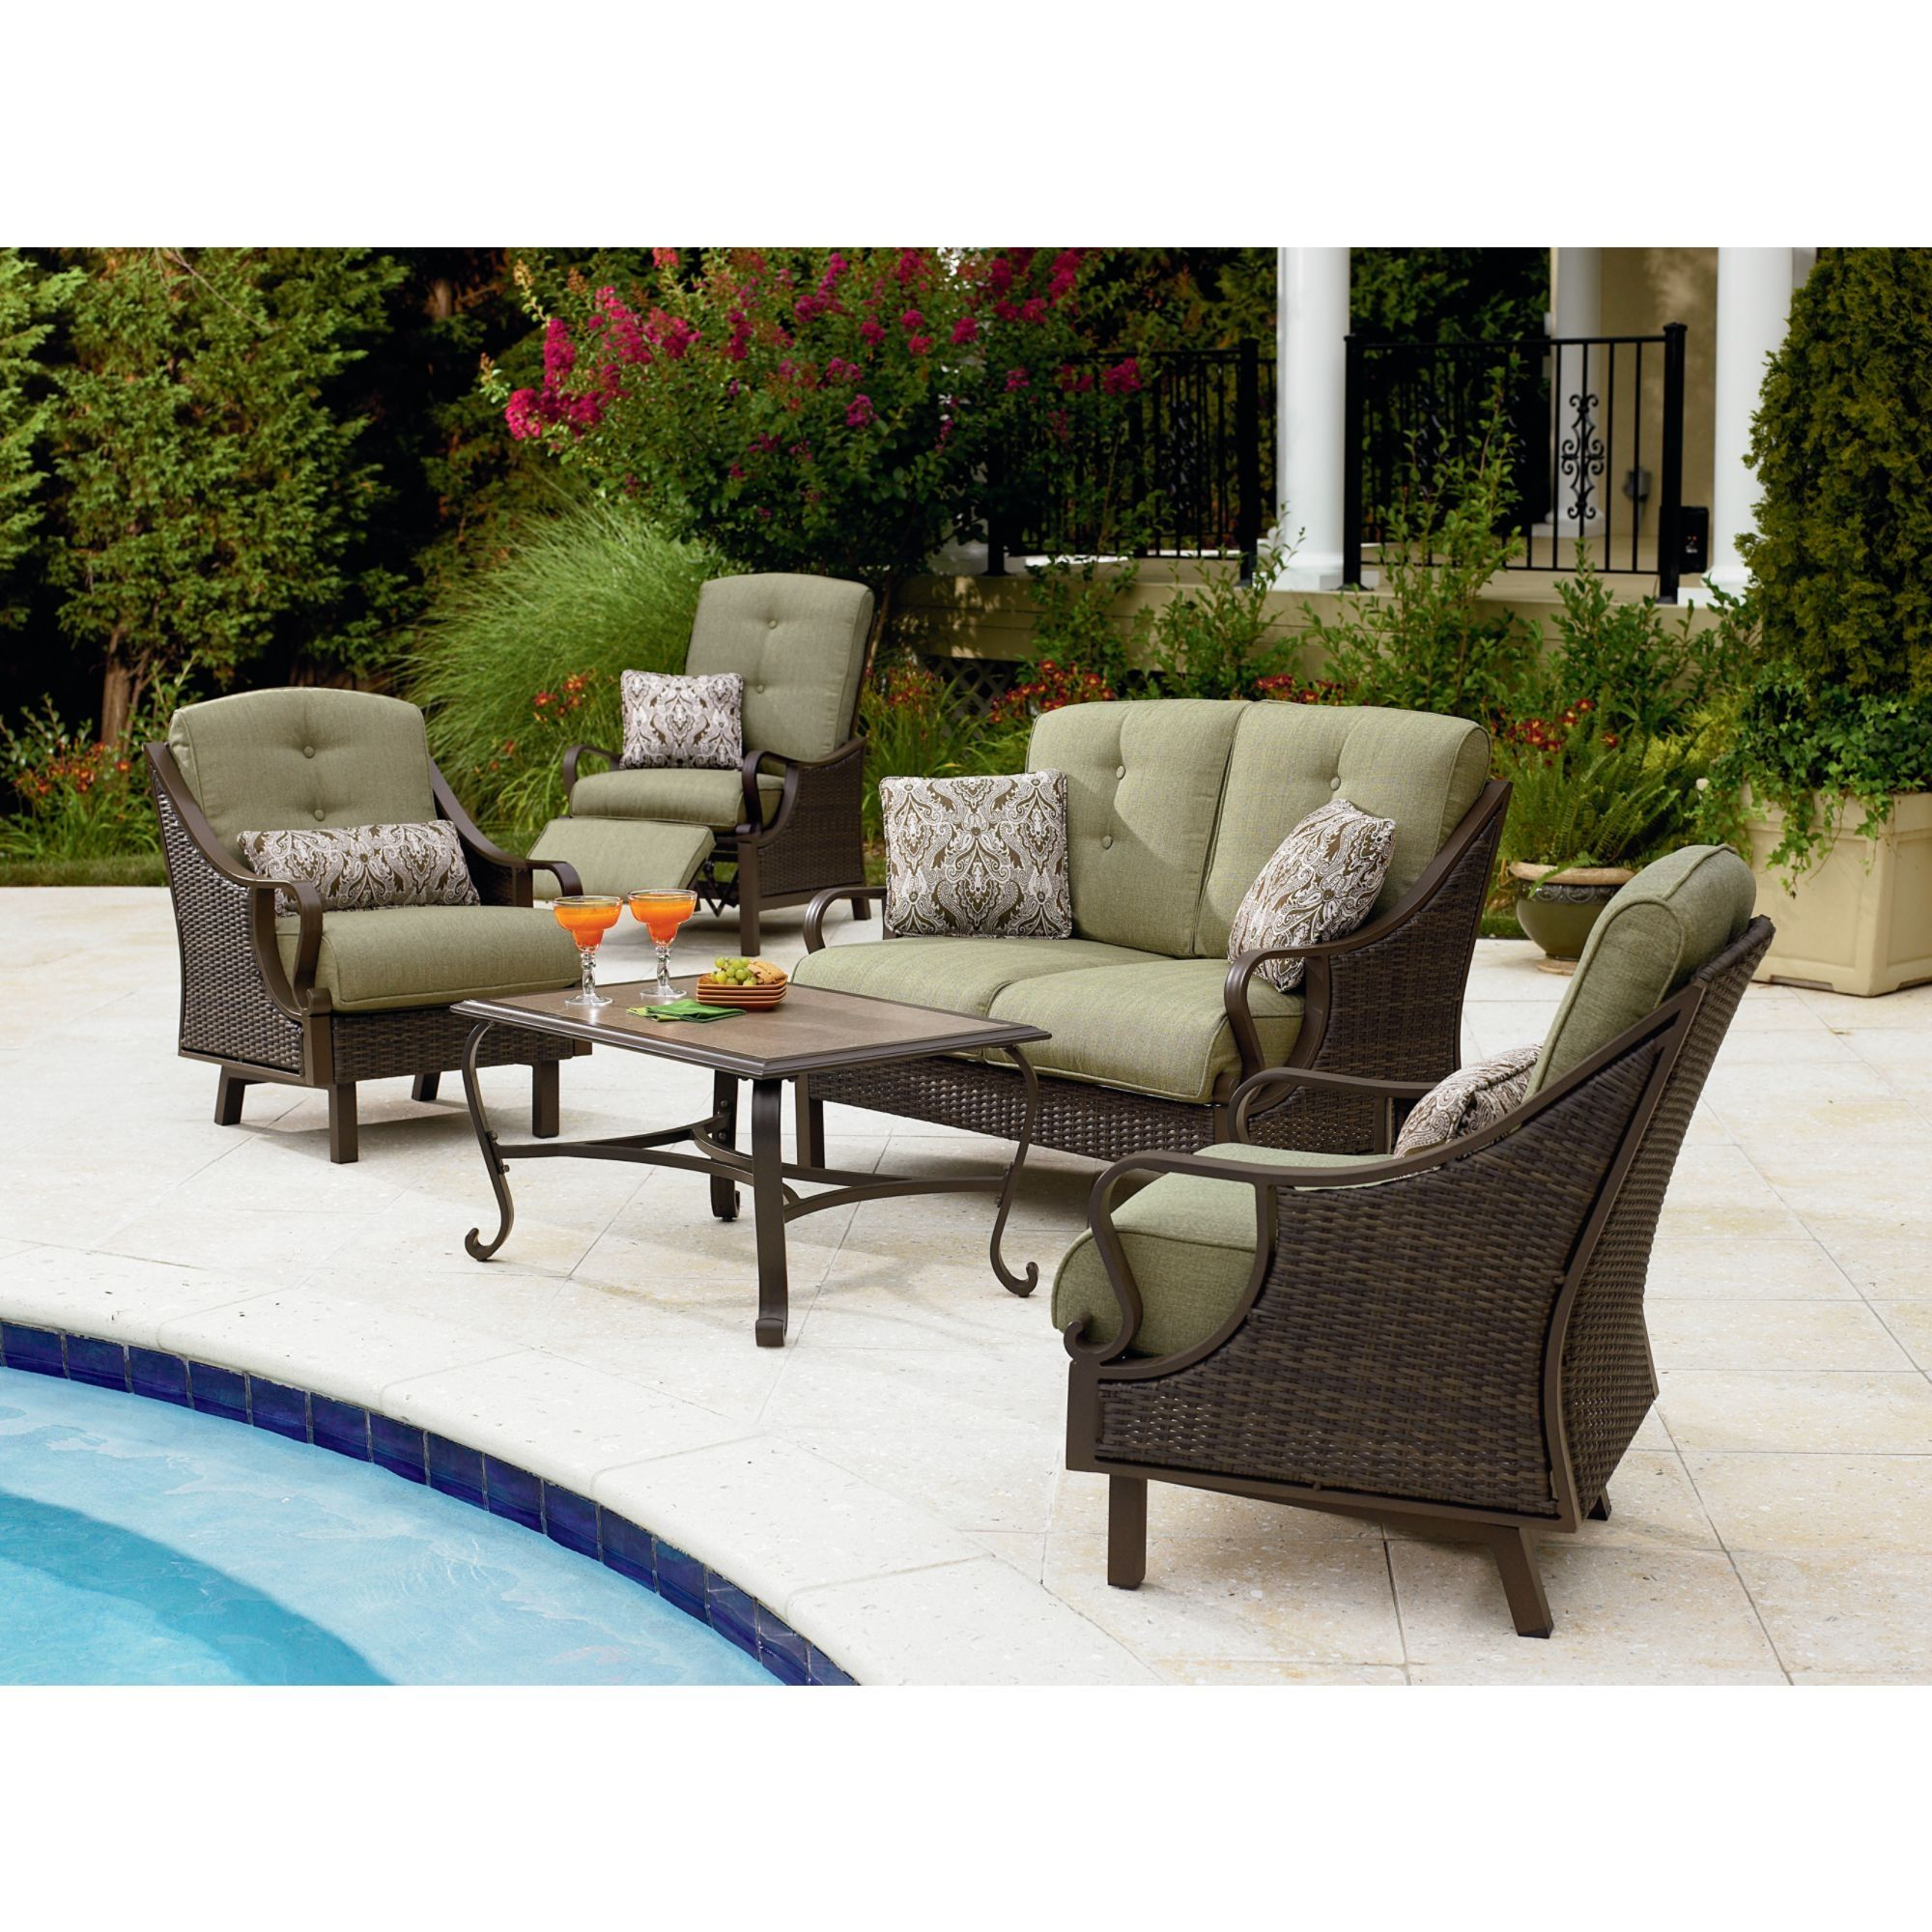 Lazy Boy Patio Furniture Cushions  Patio Decor  Pinterest  Lazy Brilliant Lazy Boy Dining Room Sets Decorating Inspiration